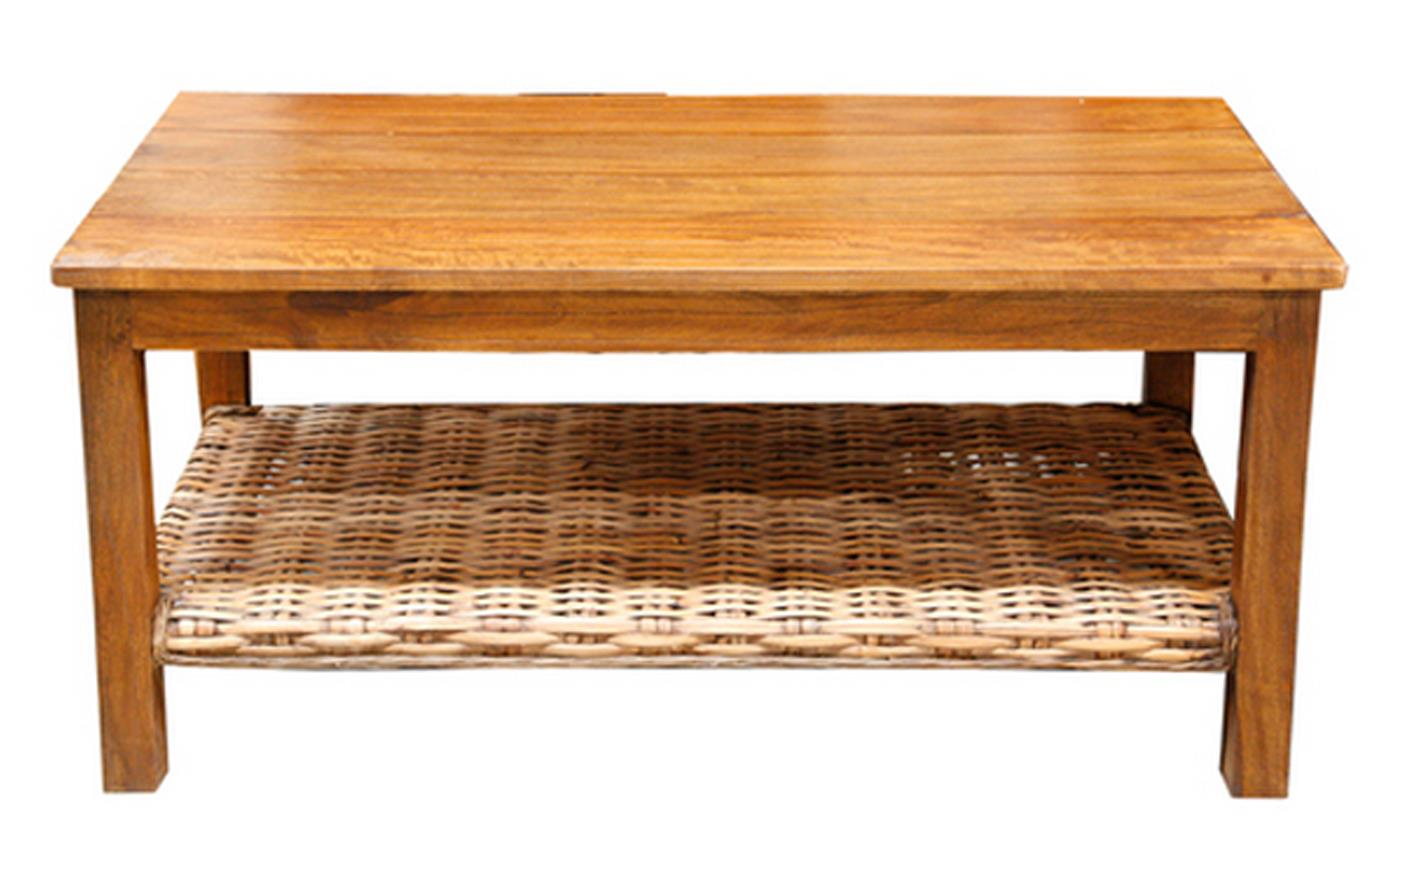 752 Coffee Table by Capris Furniture at Esprit Decor Home Furnishings